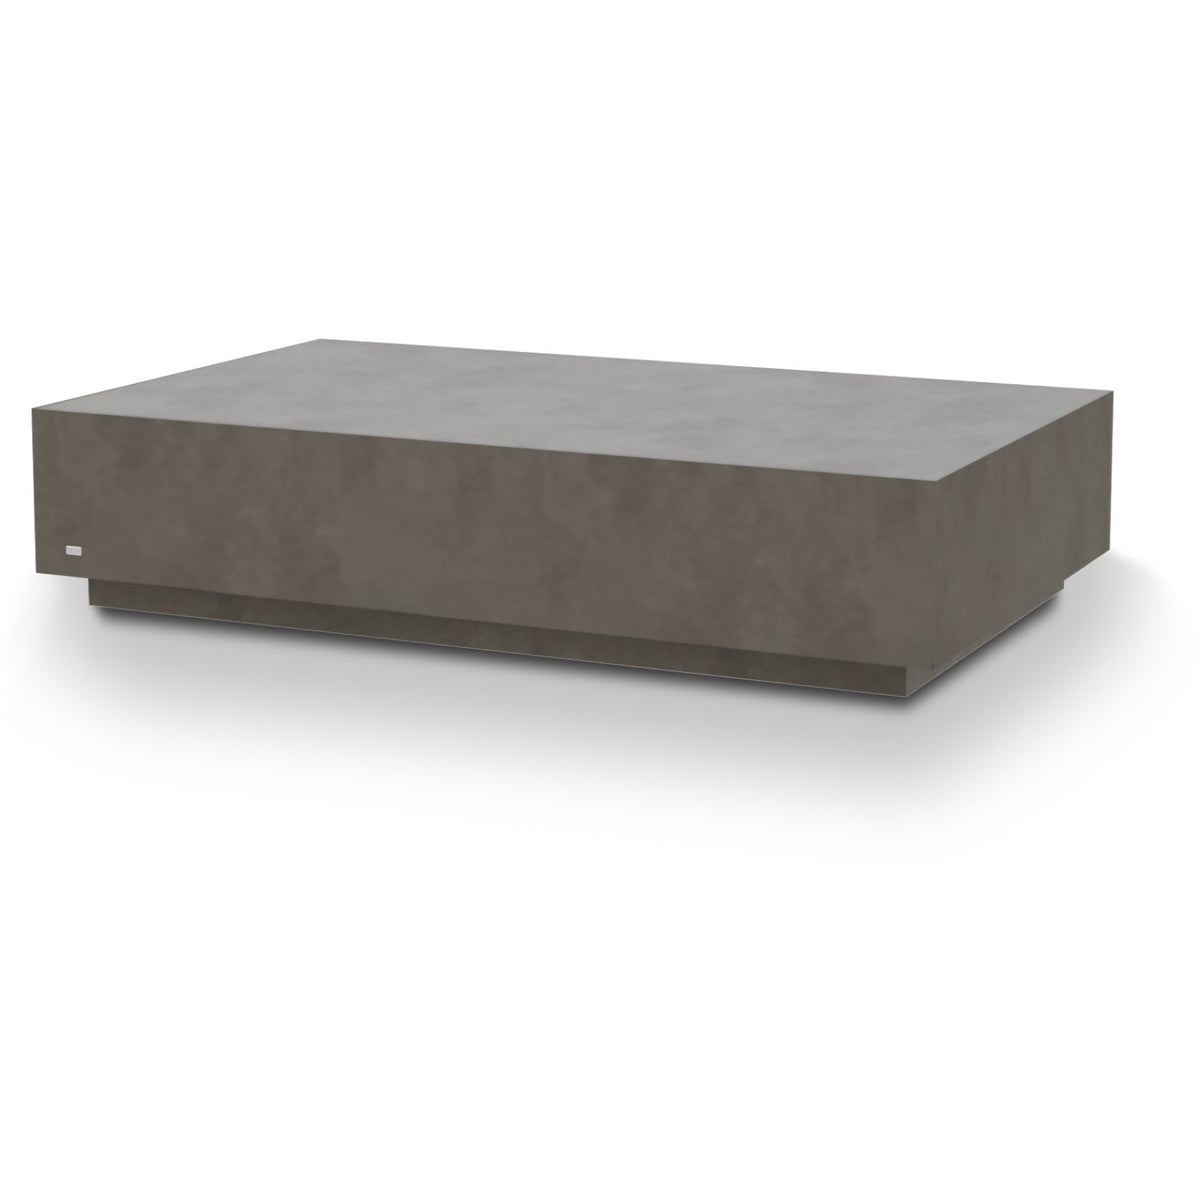 Bloc L6 Concrete Coffee Table - Outdoor Living Essentials